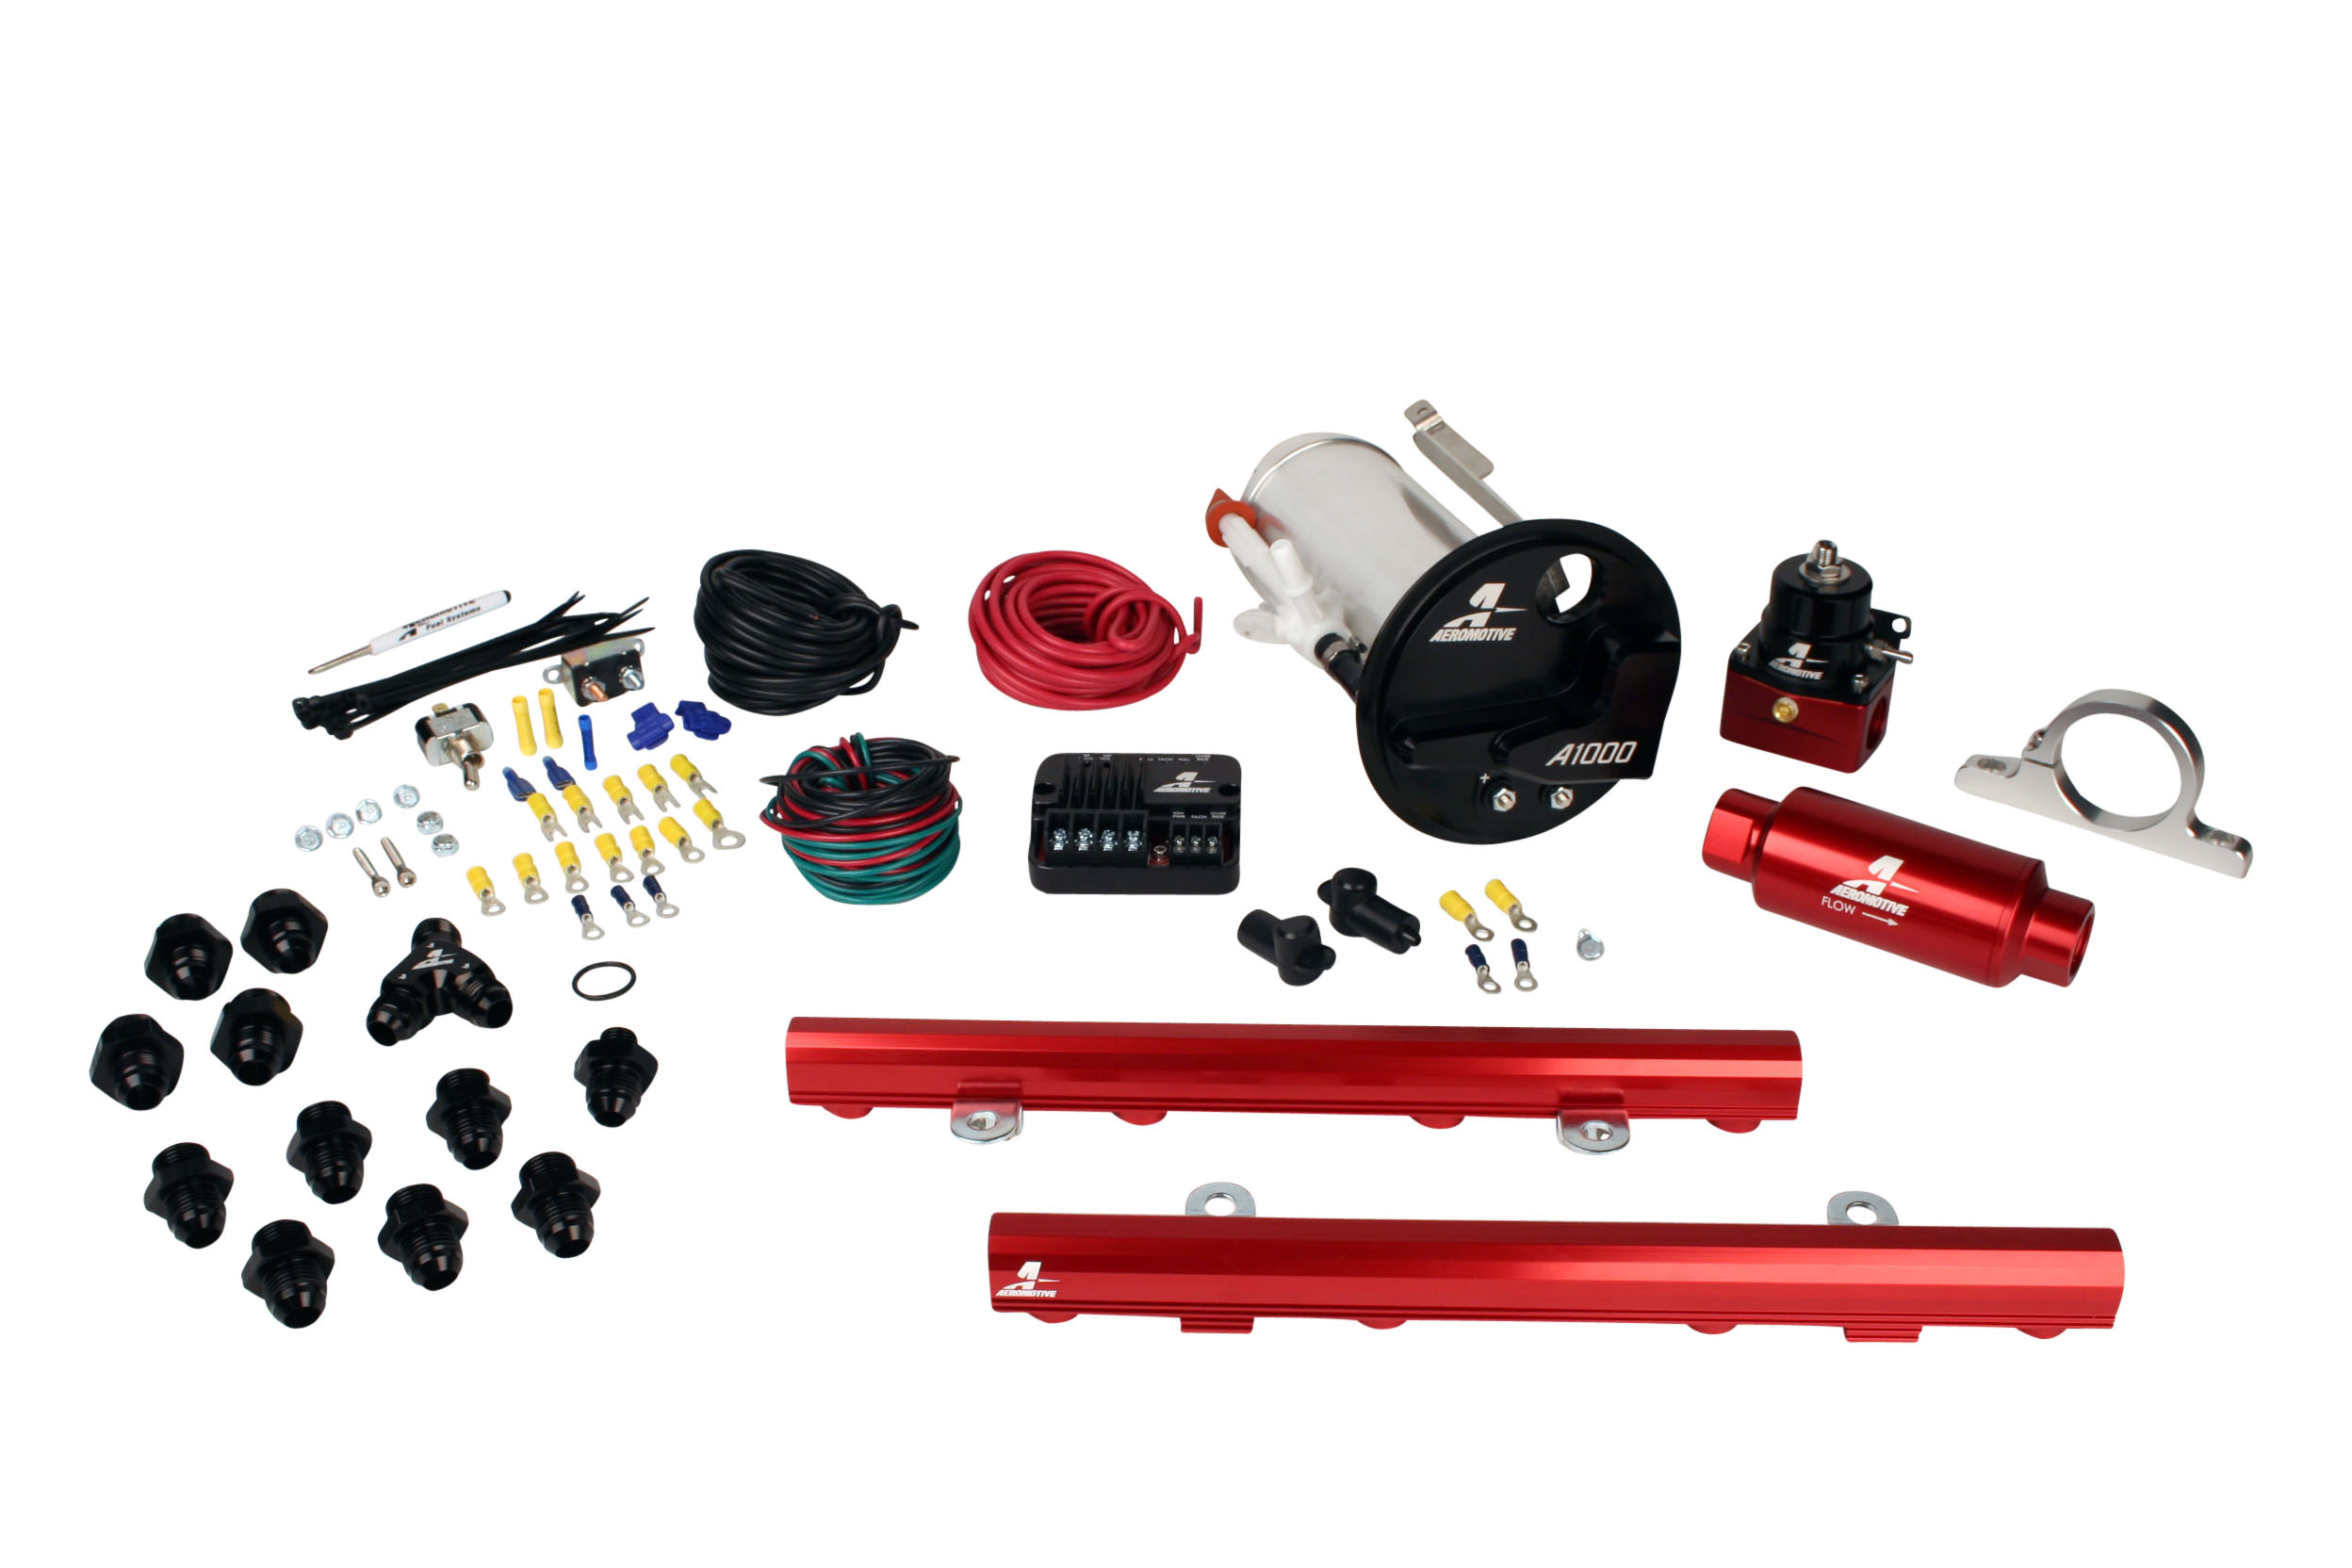 2007-2012 Ford Mustang Shelby GT500 Aeromotive Stealth A1000 Street Fuel System w/5.0L 4-V Fuel Rails